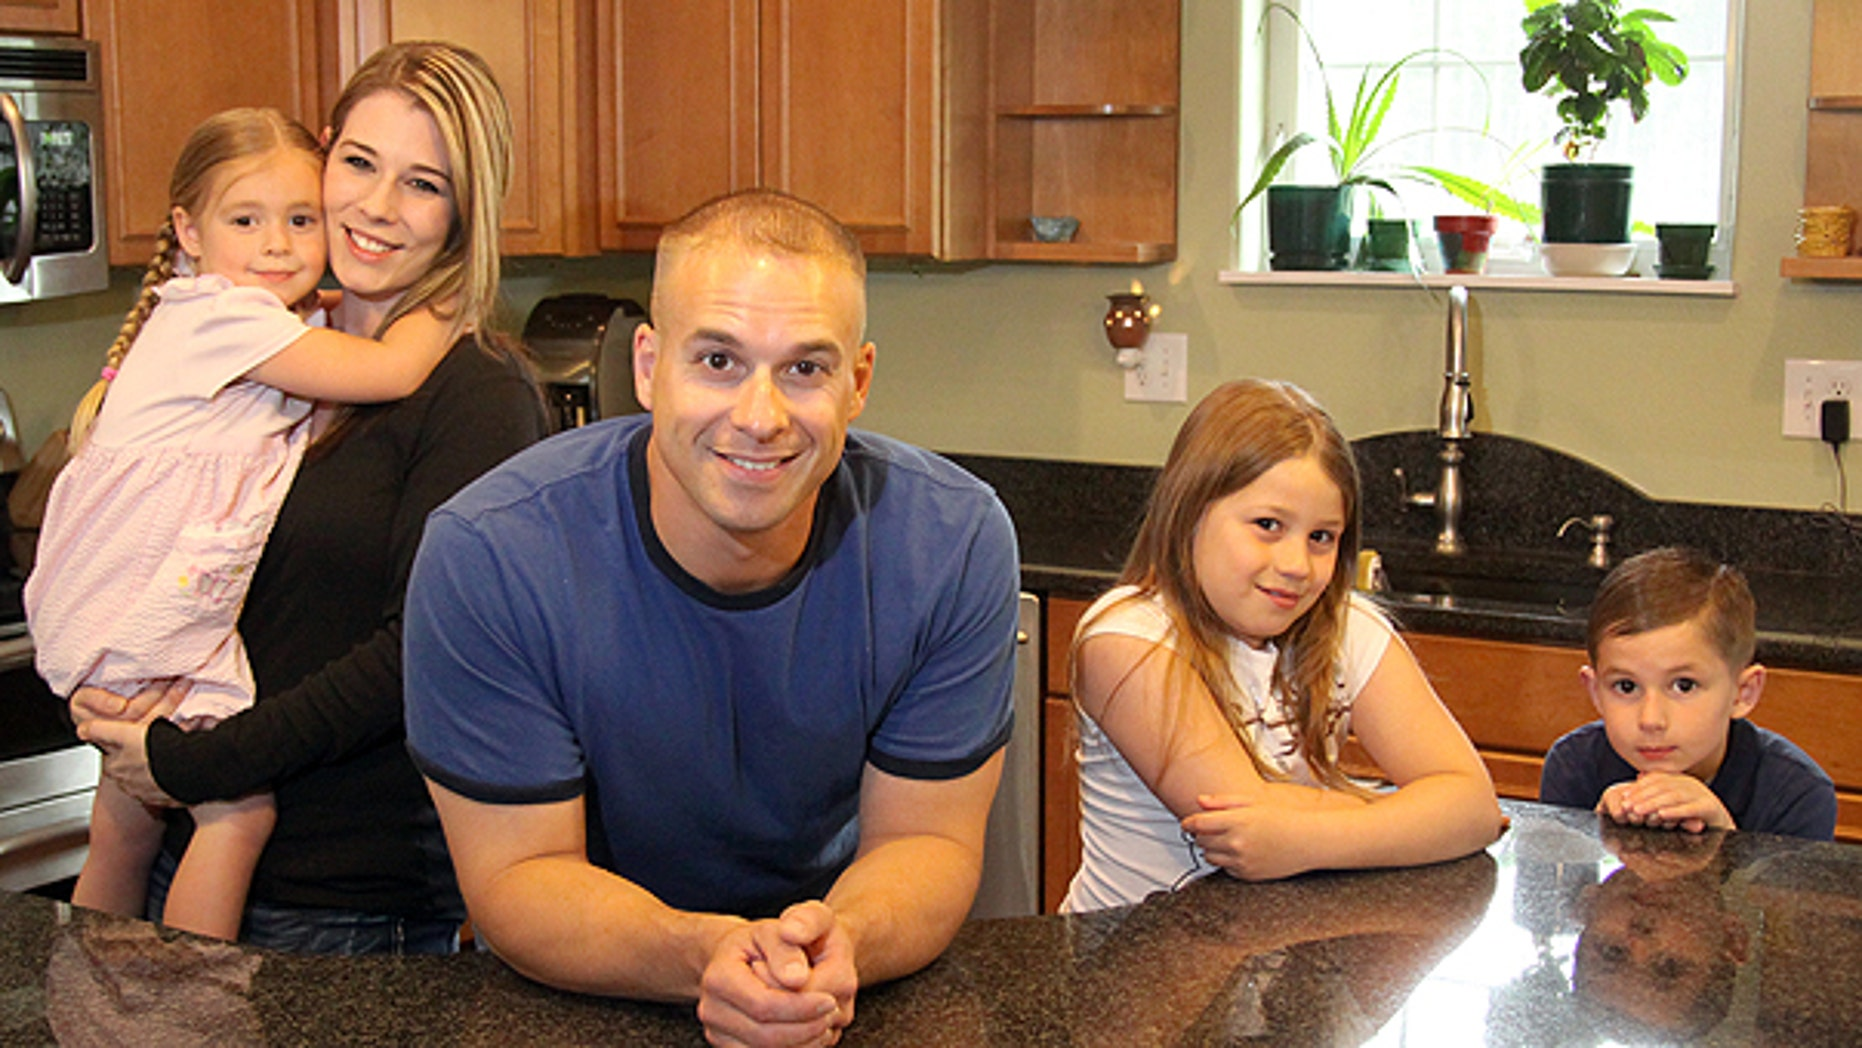 June 8: James Tritle with his wife Angela and their children BreAnna, Makayla and Cameron pose for a photo at their home in North Pole, Alaska.